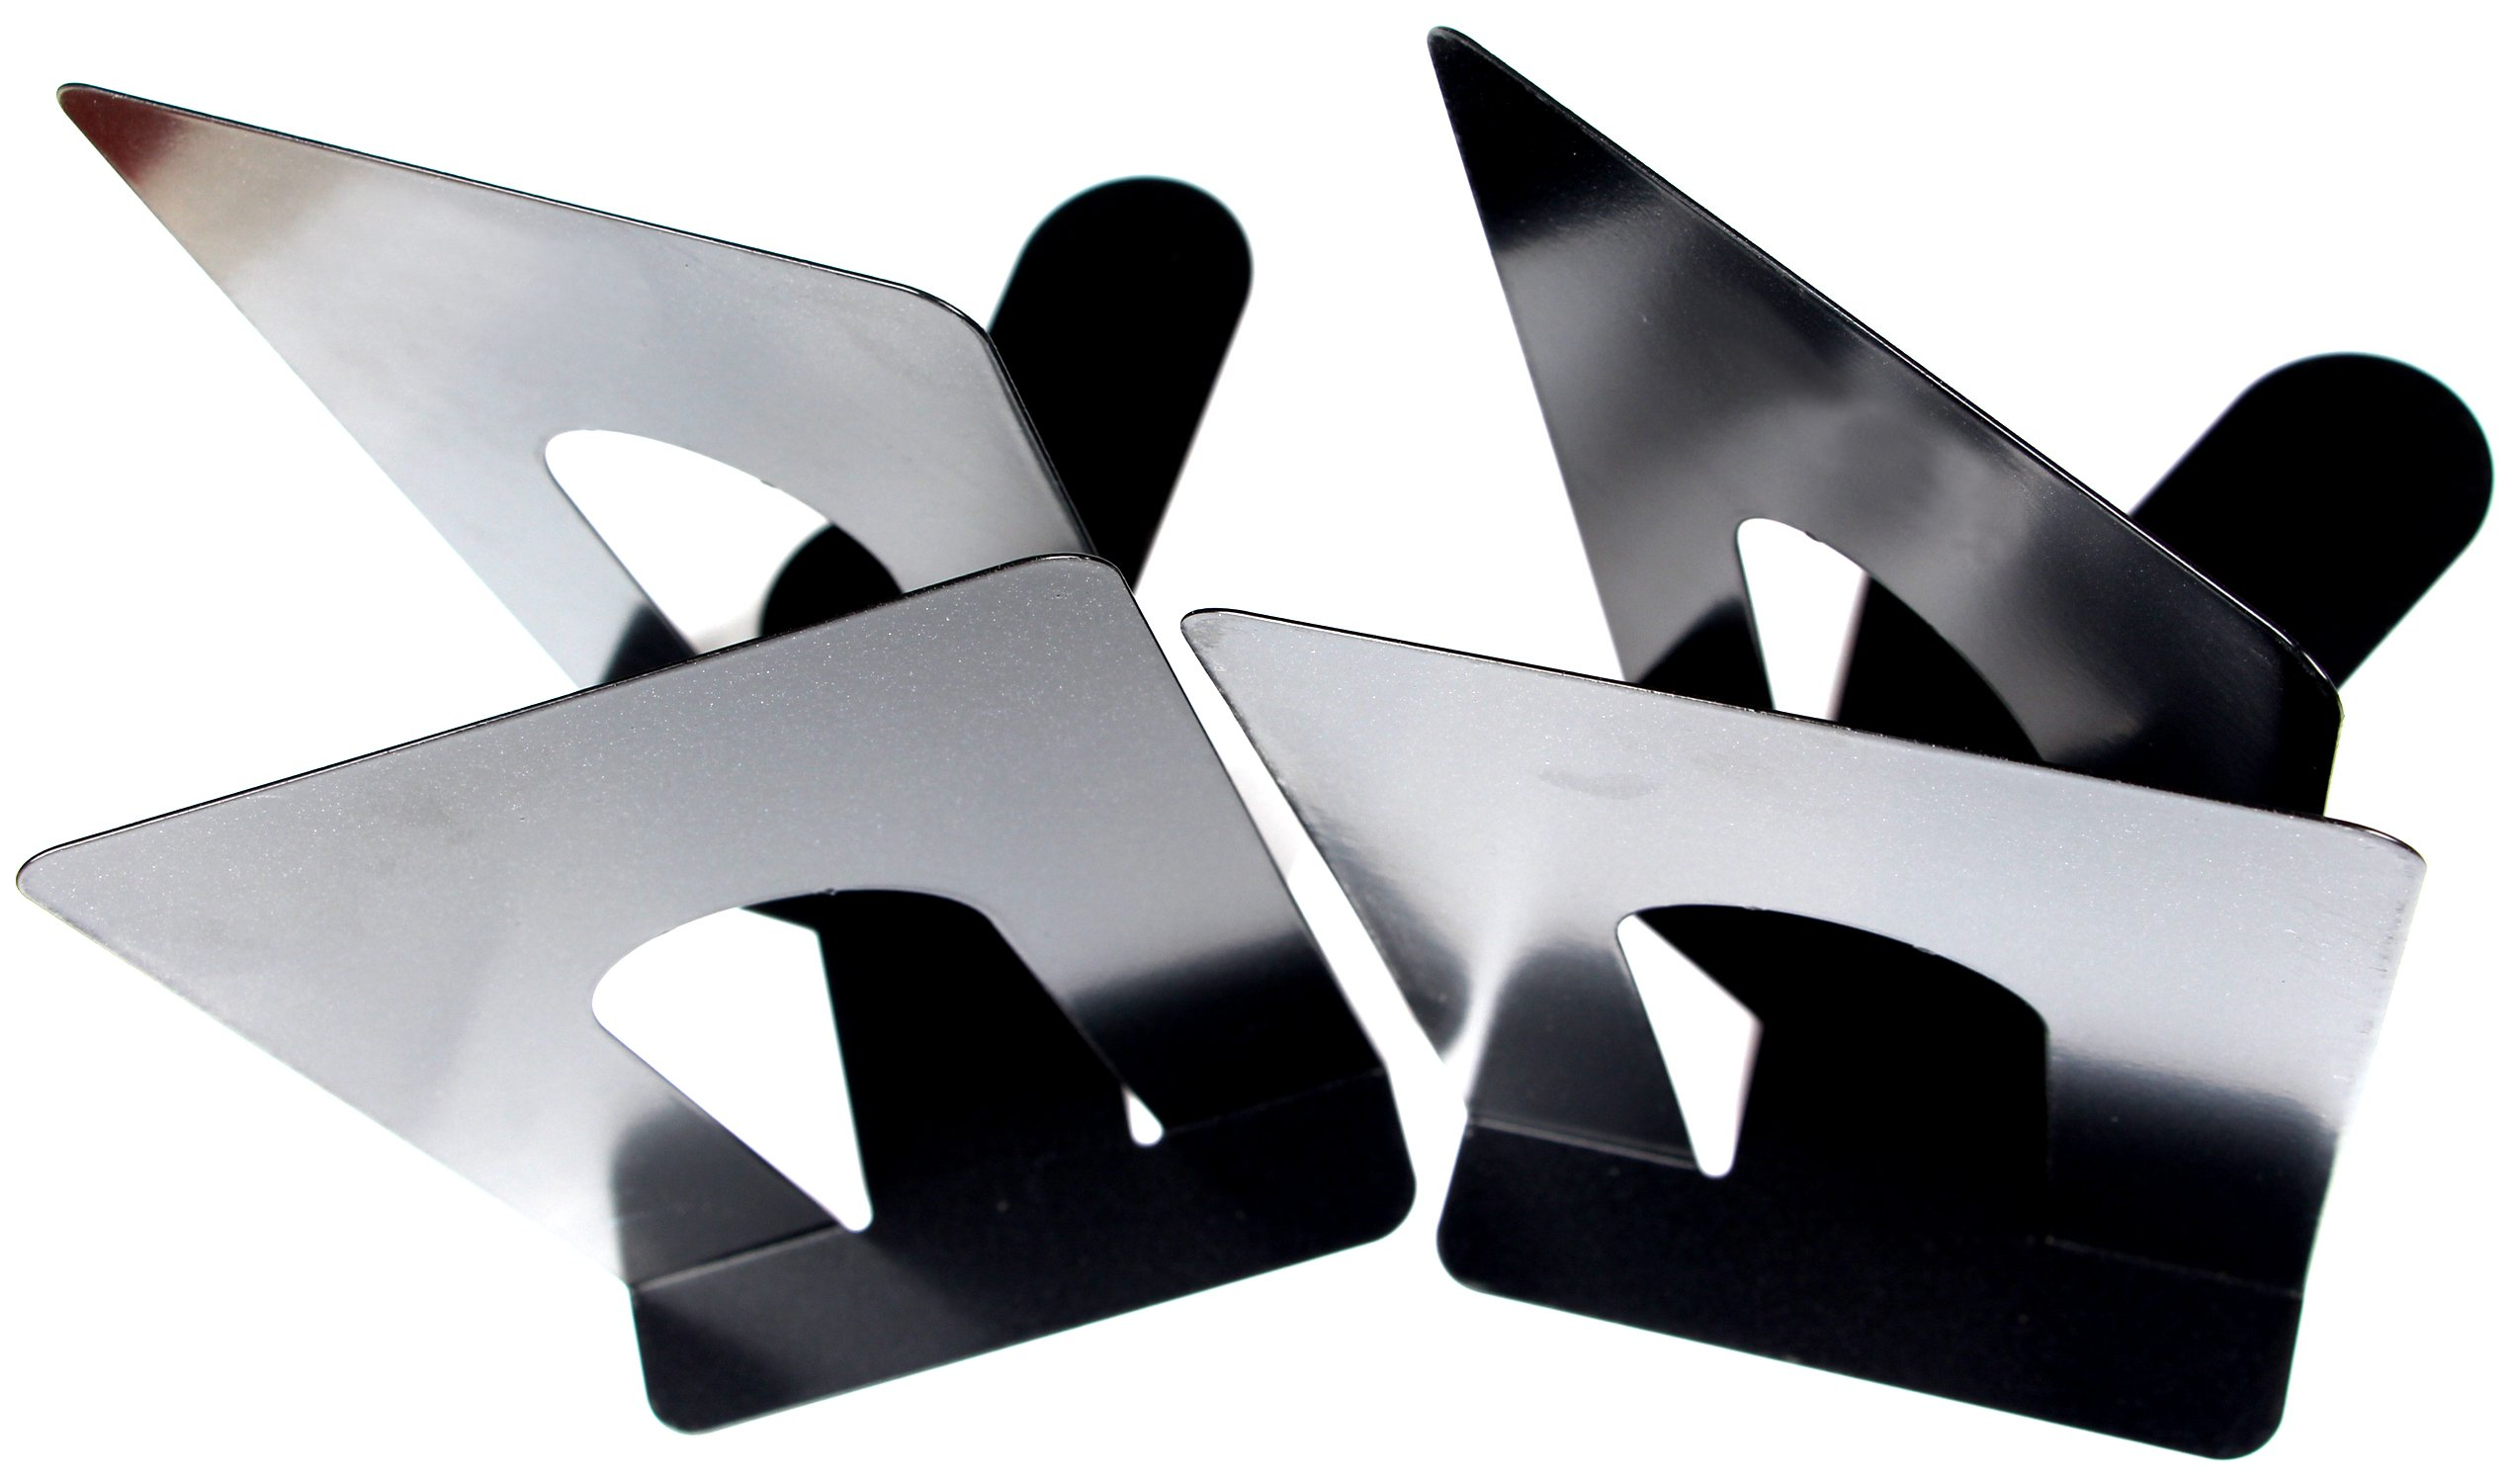 Economy Bookends Universal Black Heavy for Office,8 Inch, 4pcs(2 Pairs) by Sun Cling by Sun Cling (Image #3)